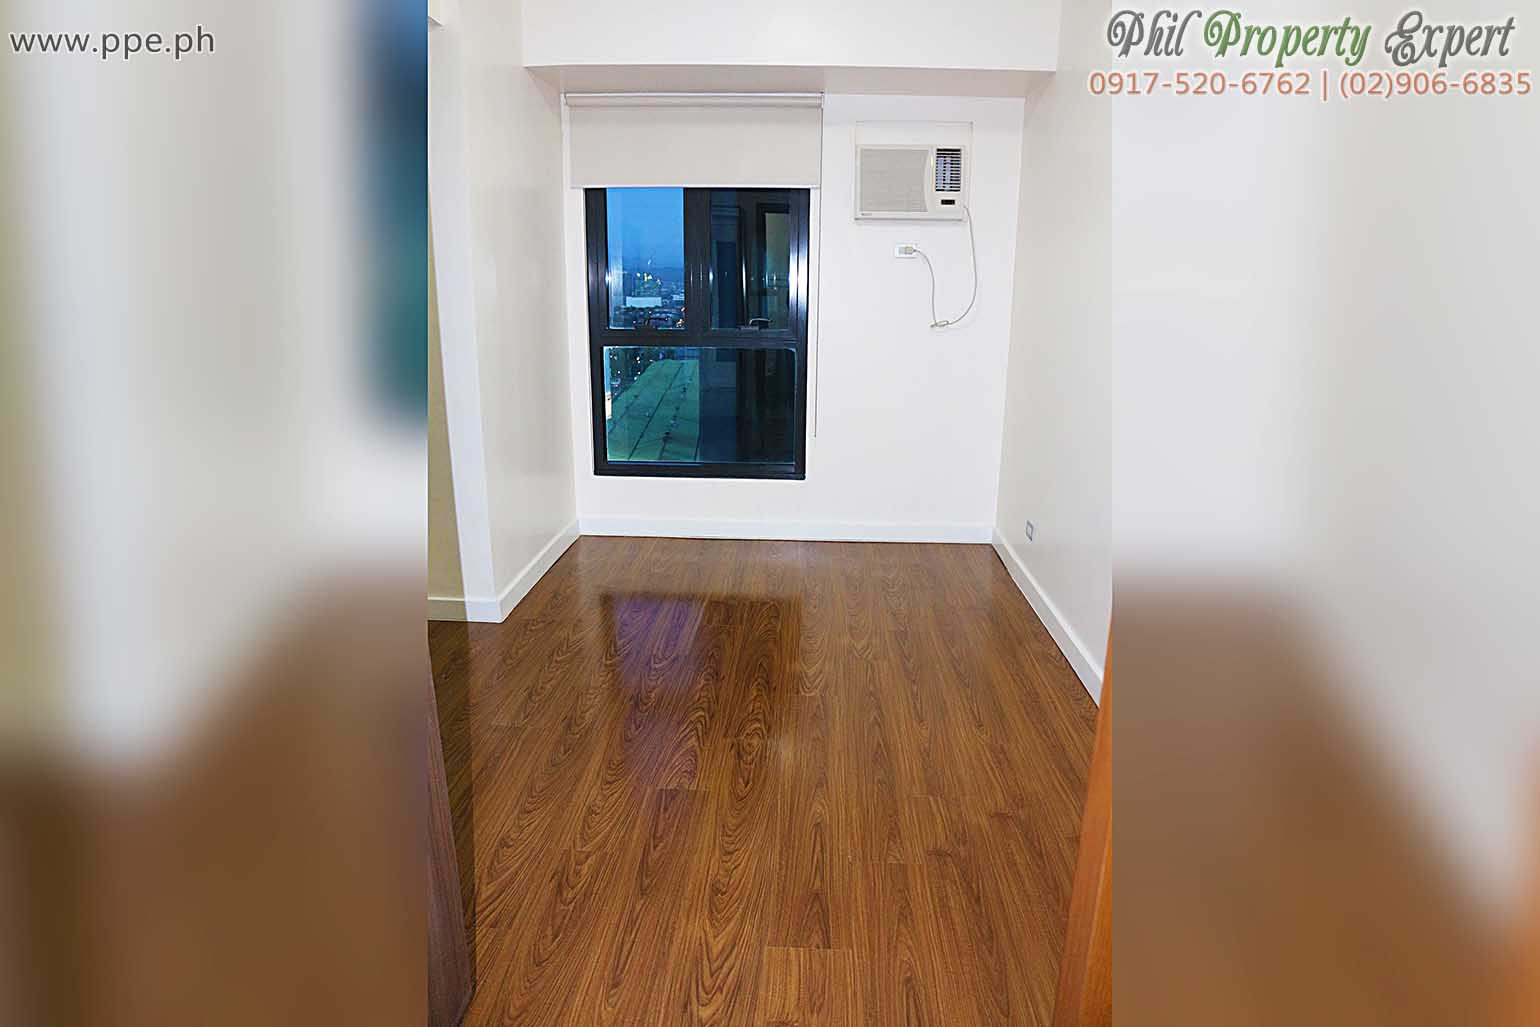 Sapphire Bloc Condo For Rent In Ortigas Mandaluyong